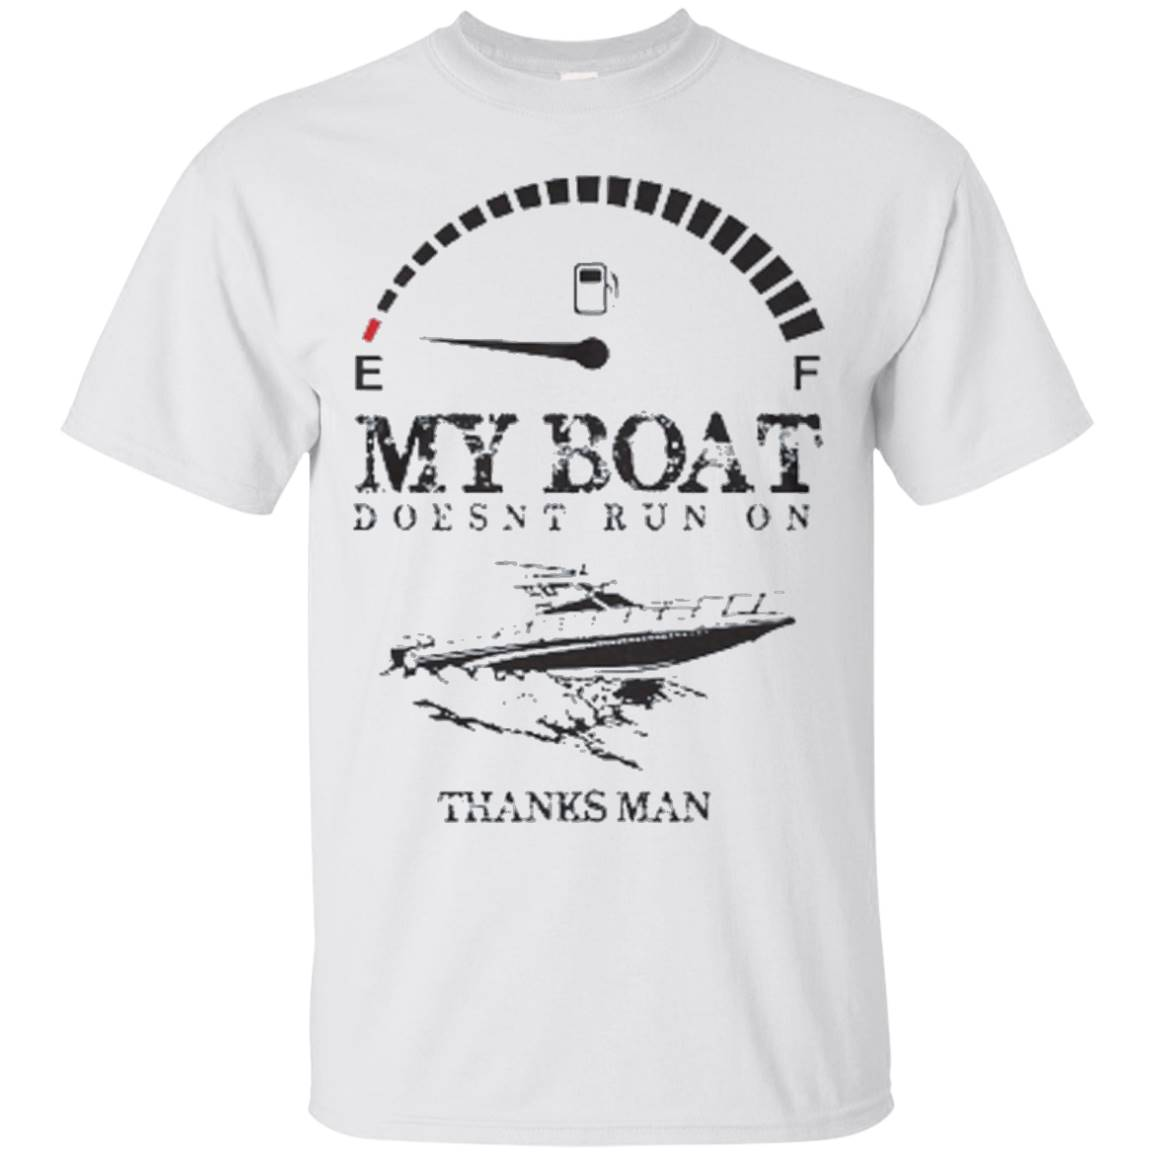 My Boat Doesn't Run on Thank You Funny Boat Captain Shirt